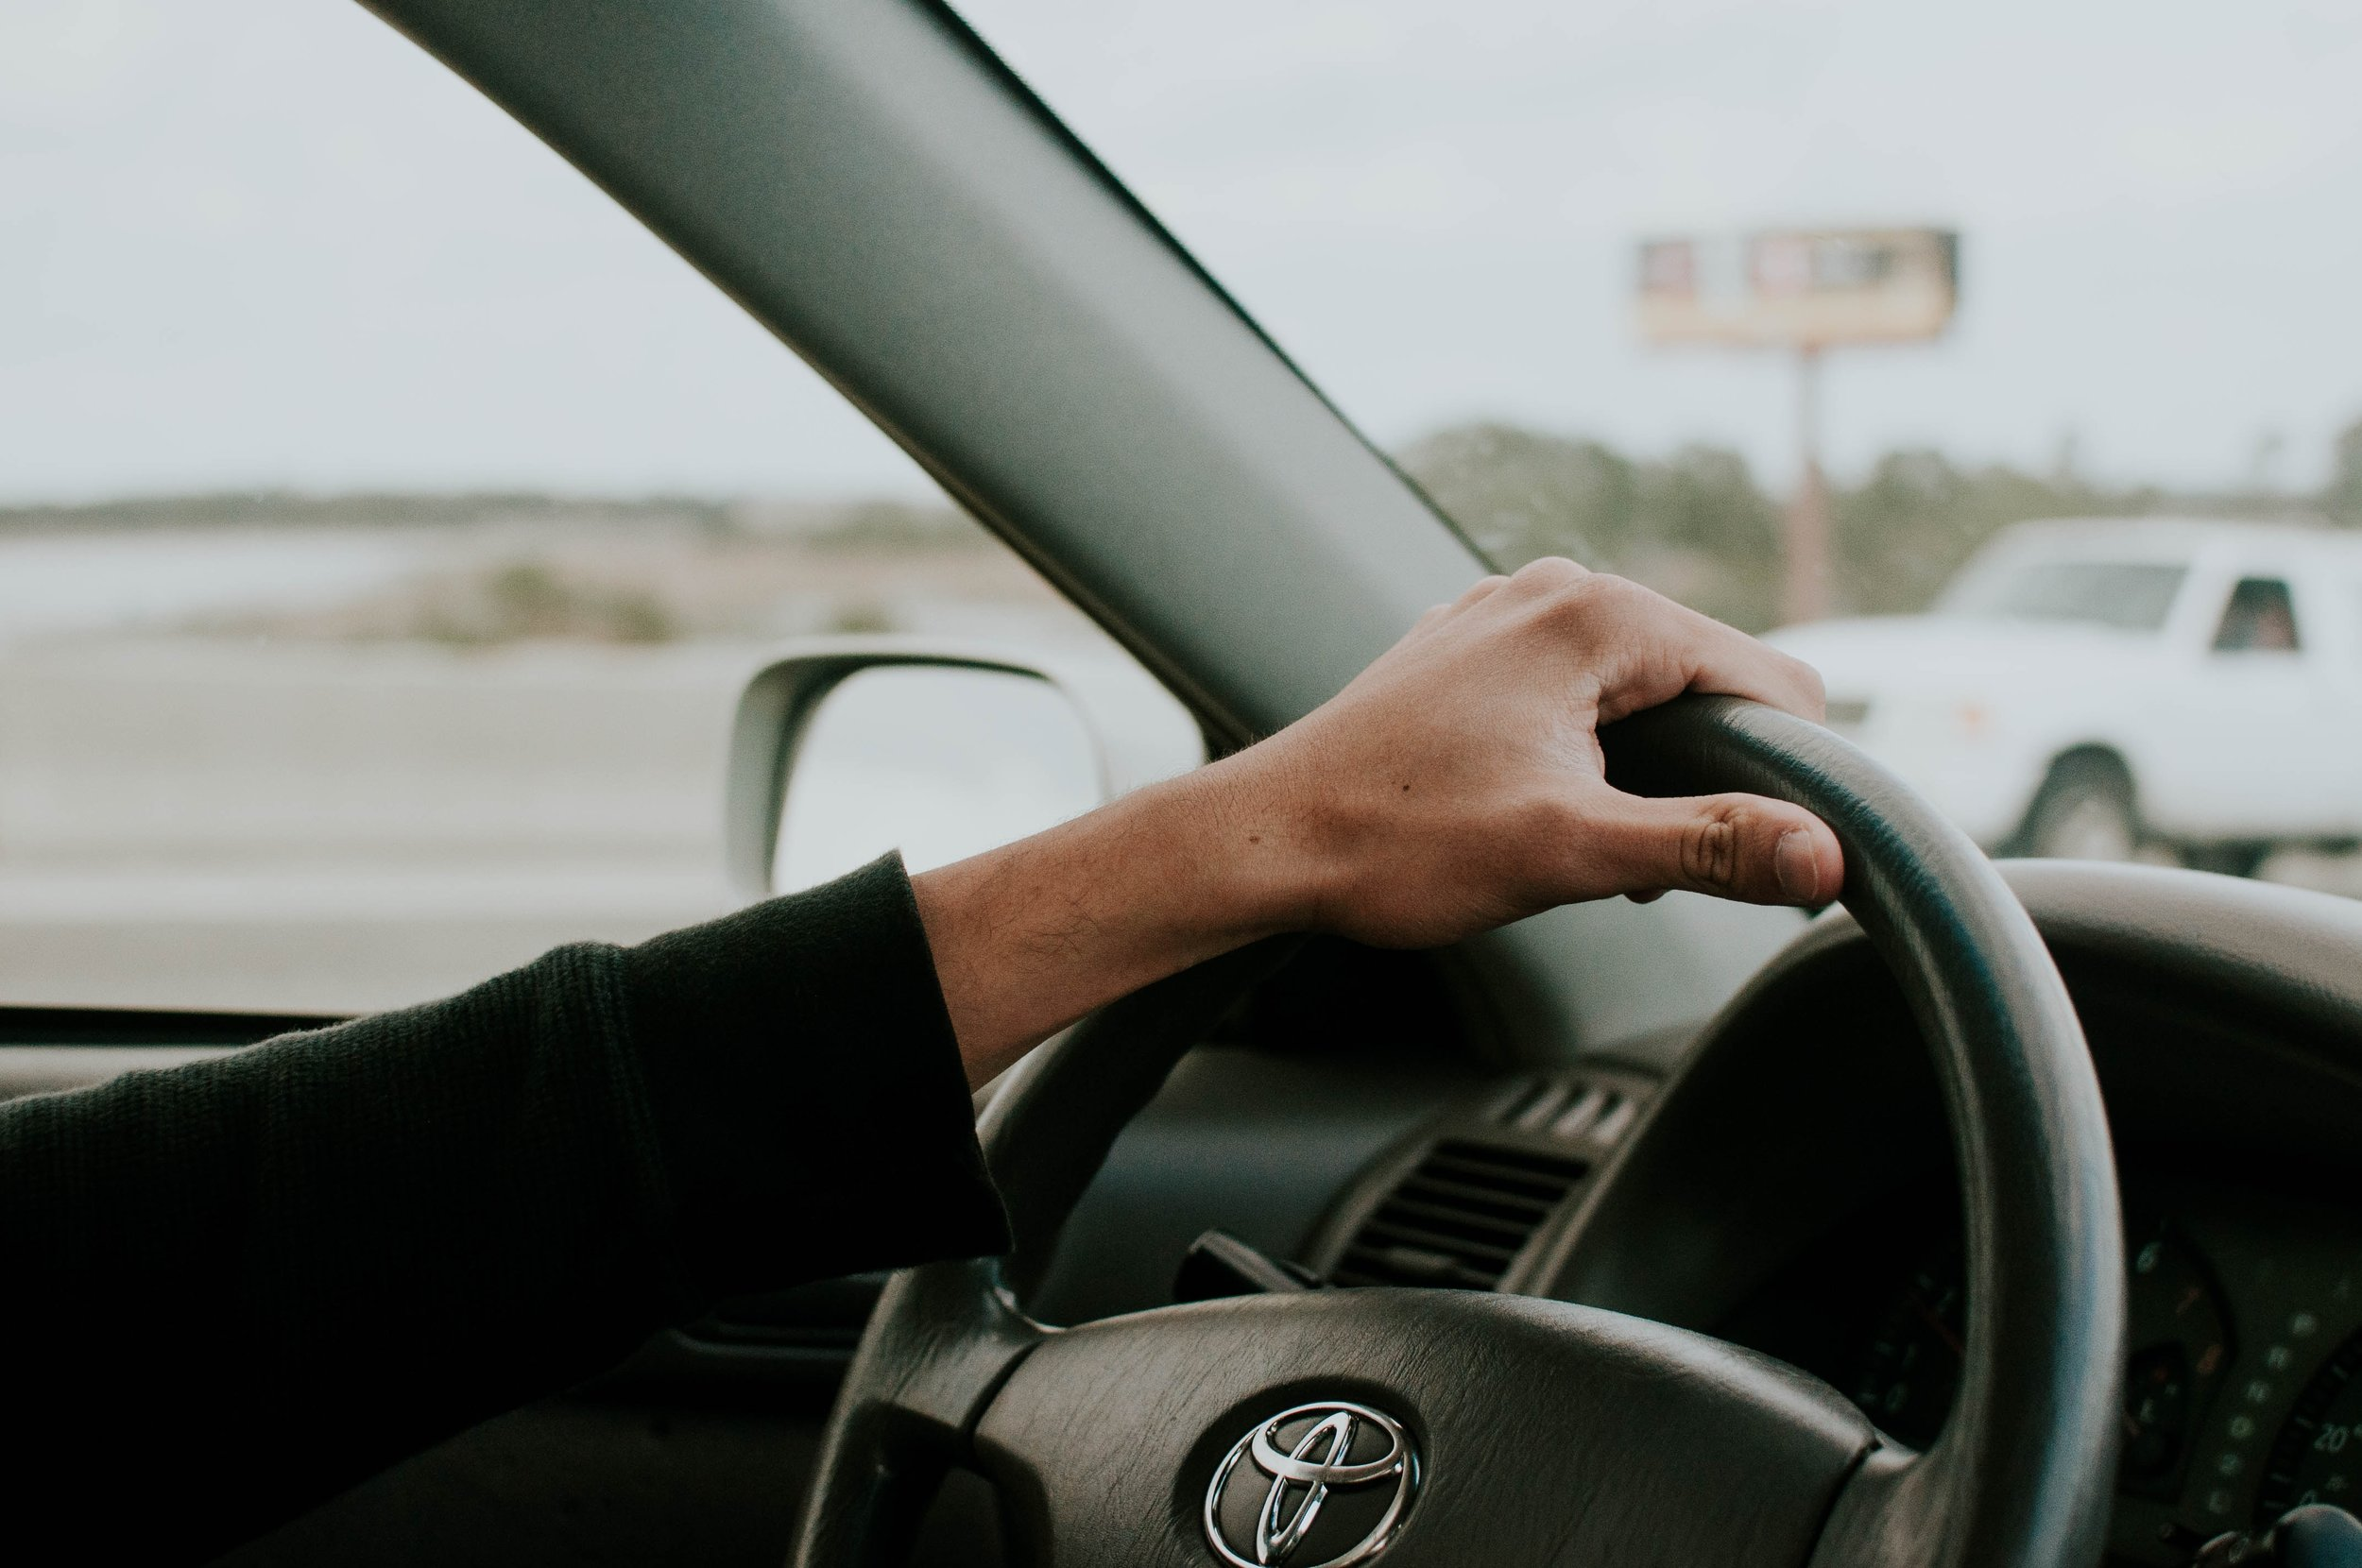 Drowsy driving can be avoided